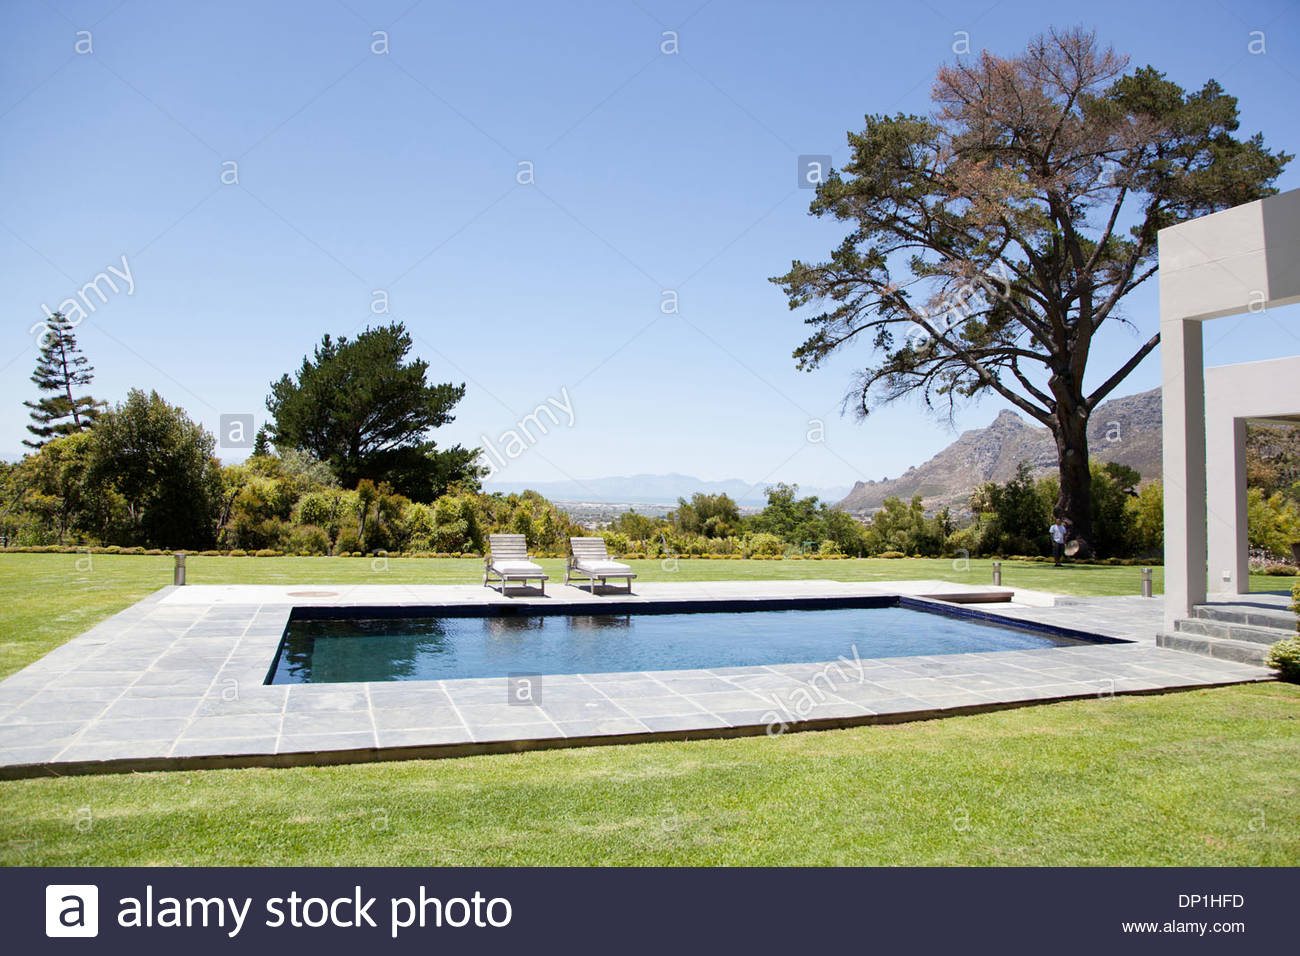 Modern house with swimming pool - Stock Image